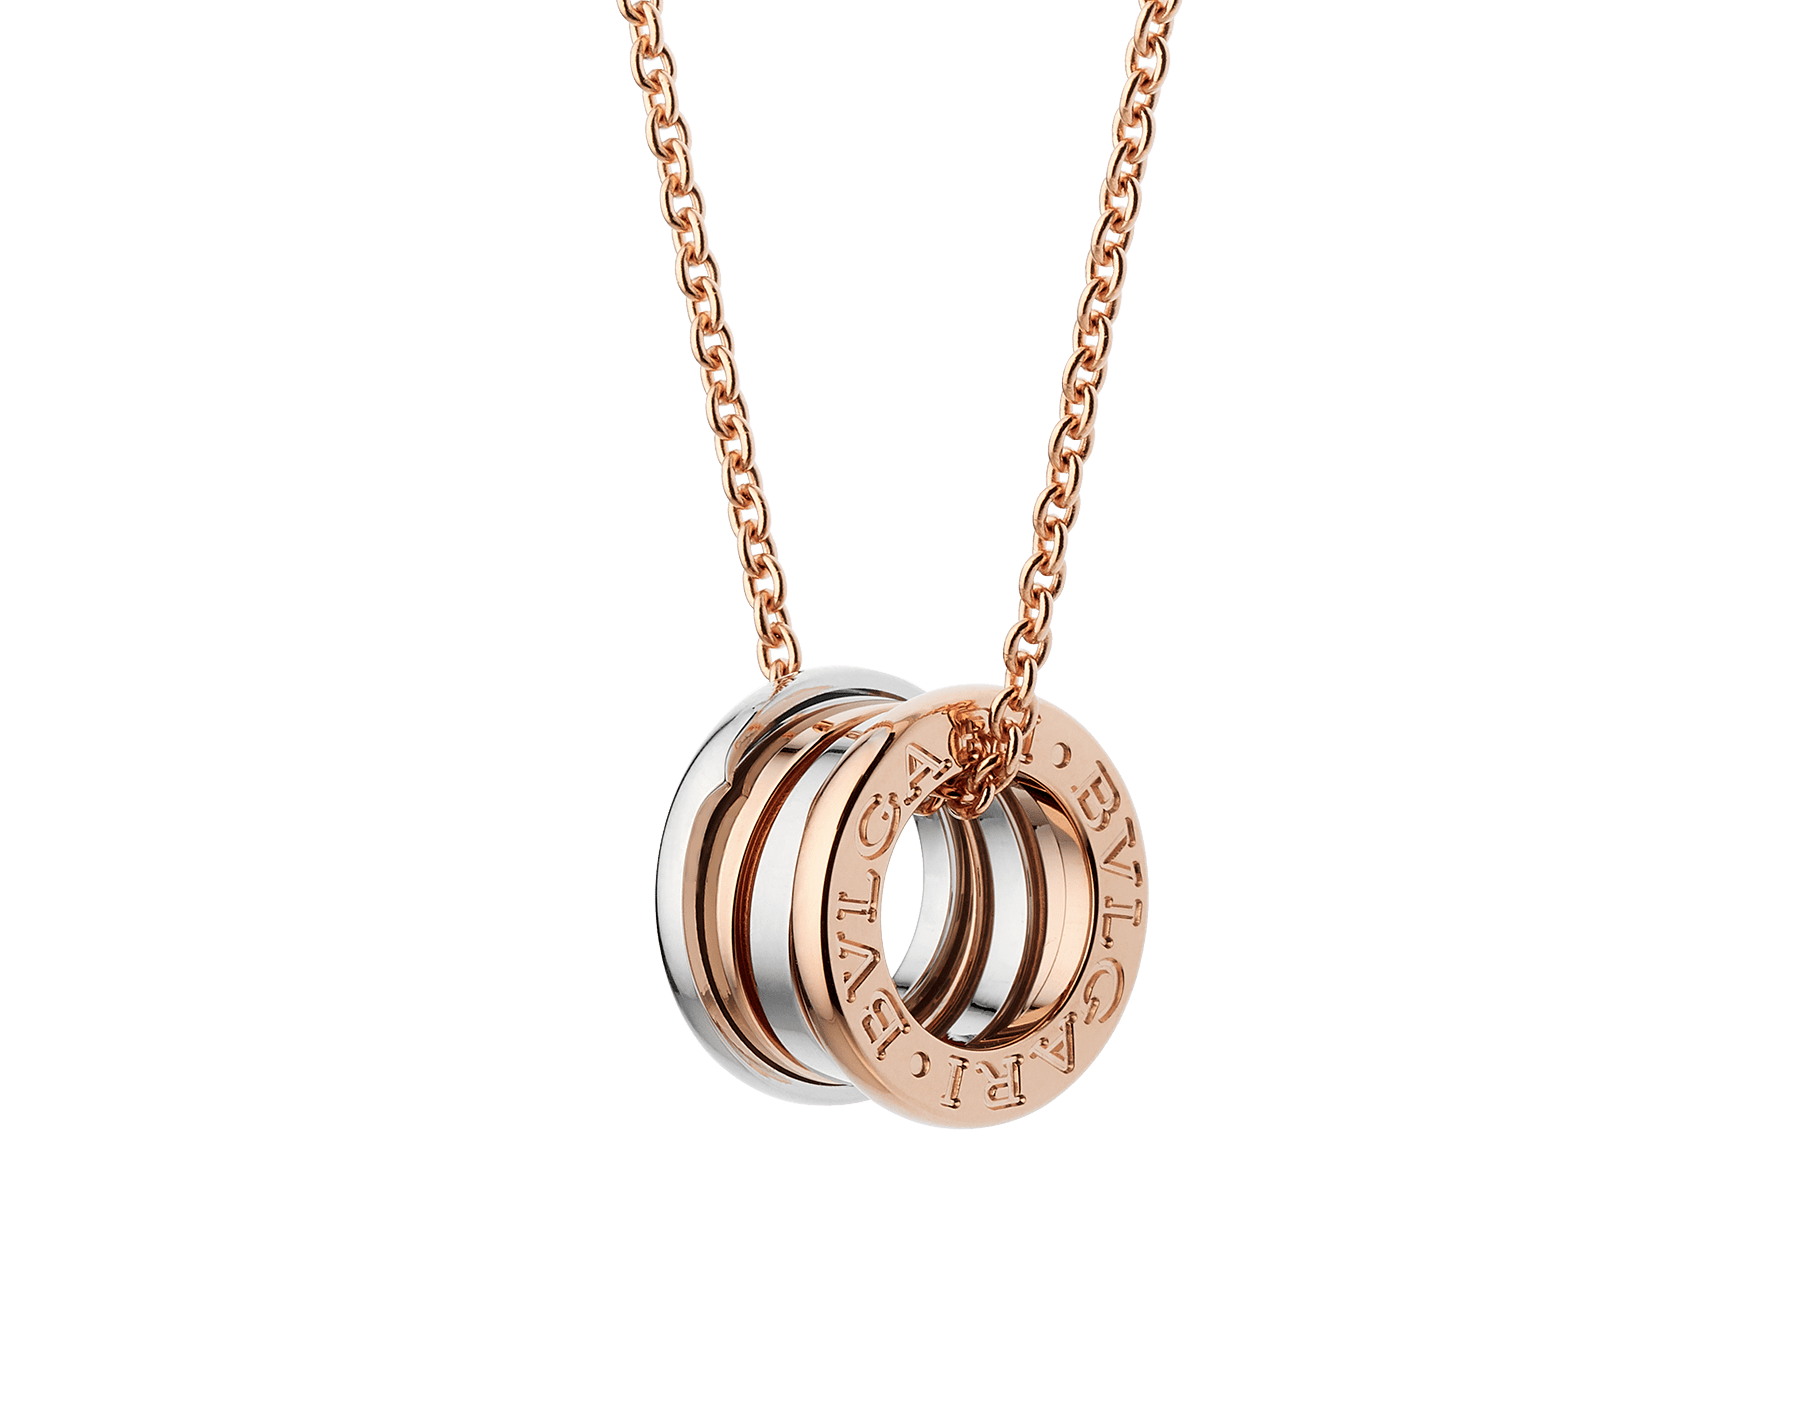 B.zero1 necklace with 18 kt rose and white gold pendant, 18 kt rose gold chain. 354903 image 1